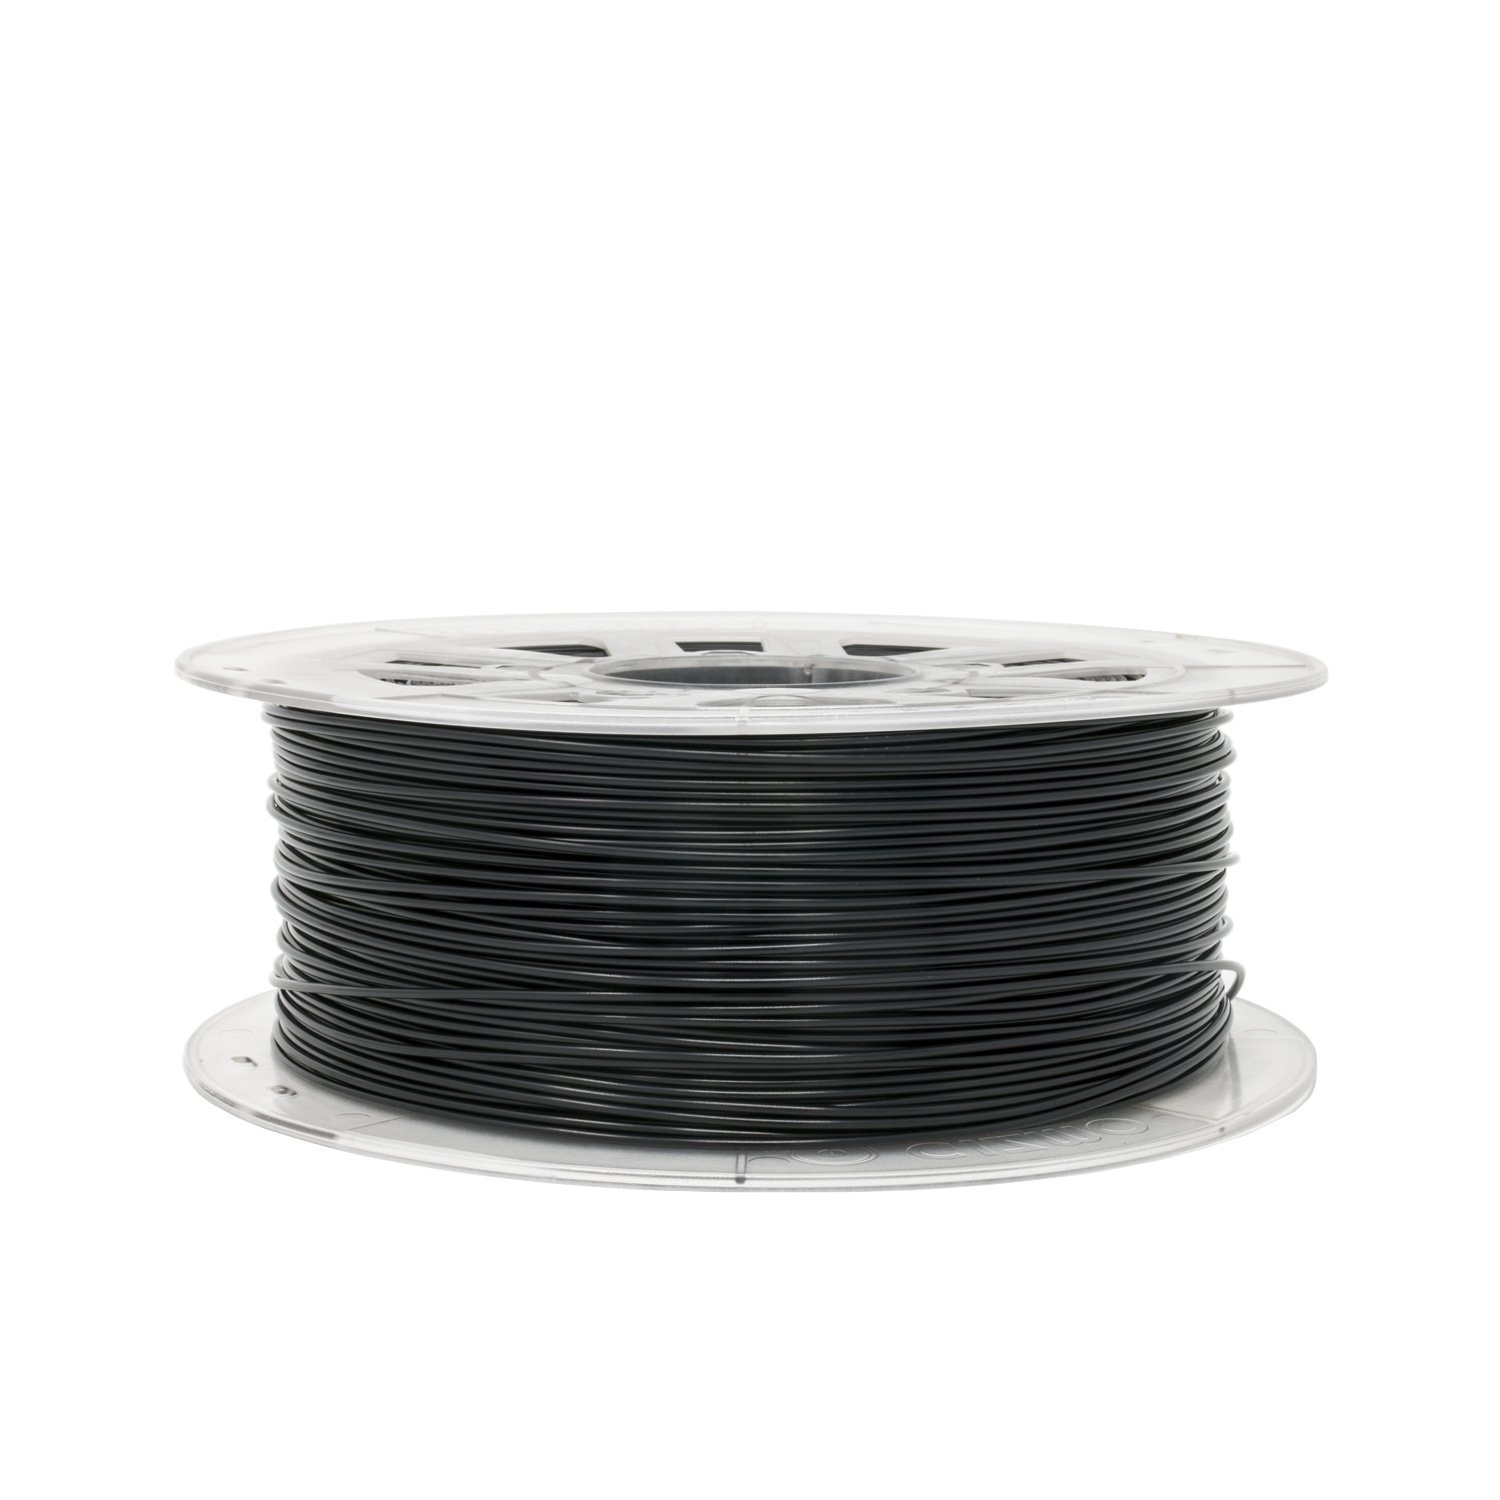 PC Polycarbonate Filament 1kg // 2.2lbs for 3D Printers Black 2.85mm Gizmo Dorks 3mm